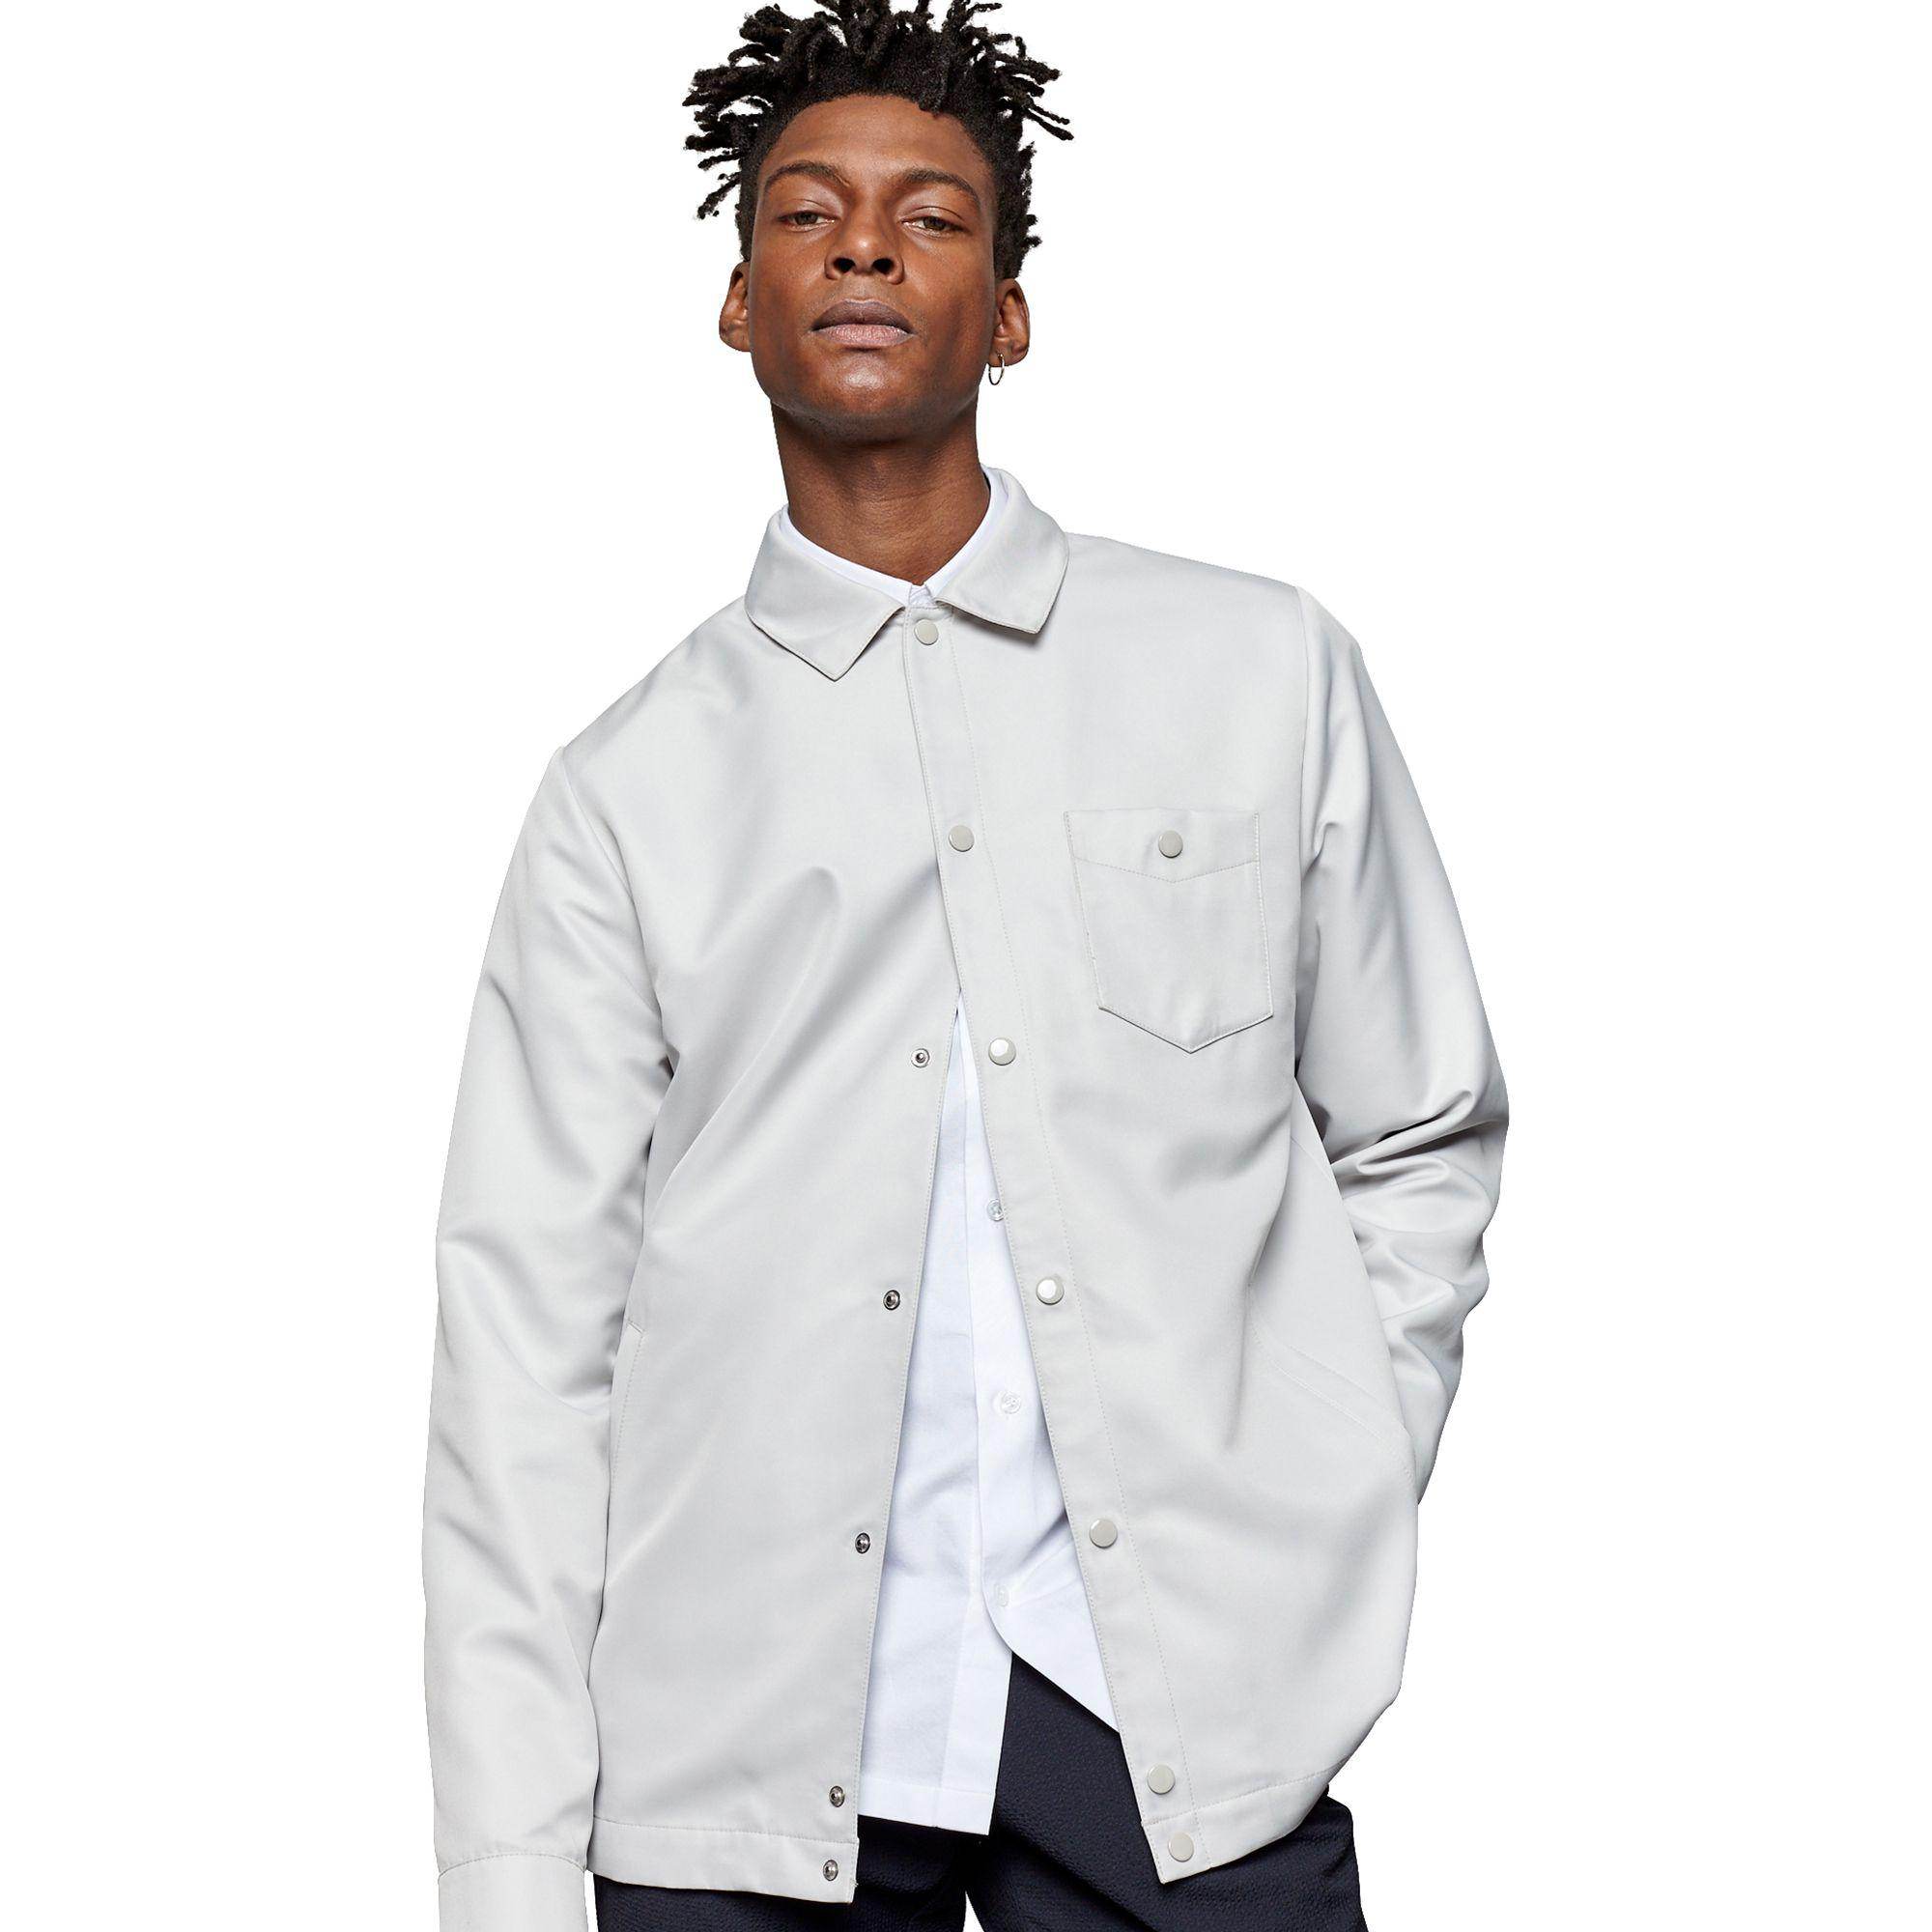 lyst - for love & lemons malmo grey coach jacket in gray for men